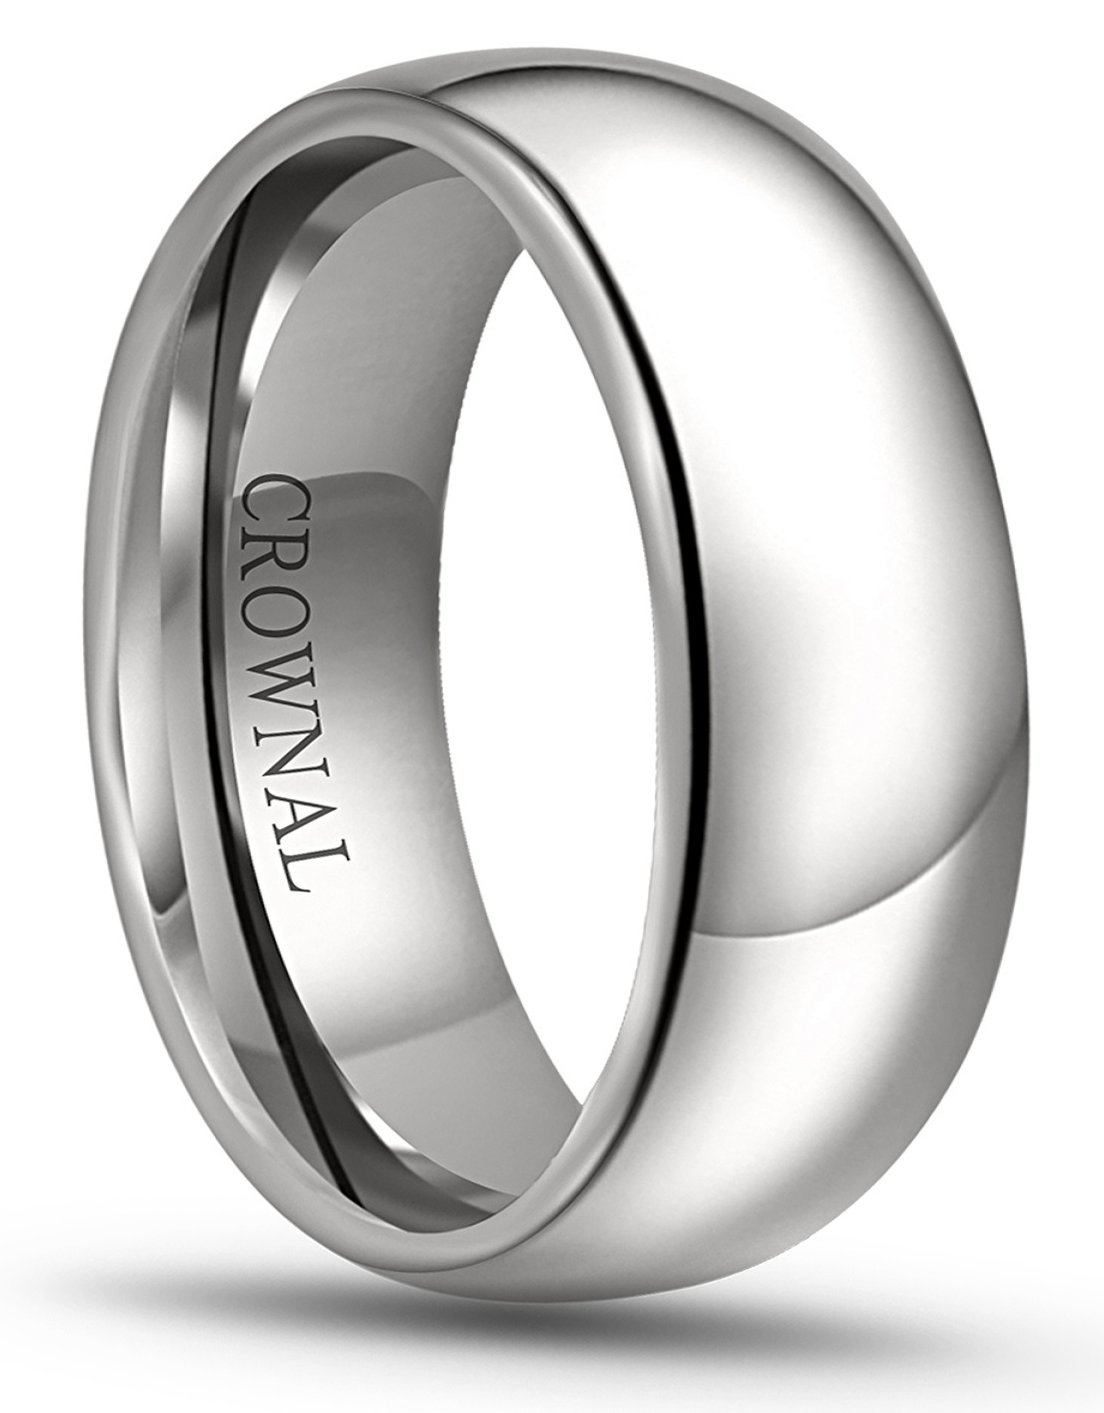 Crownal 8mm 6mm 5mm 4mm 3mm 2mm White Tungsten Carbide Polished Classic Dome Wedding Ring All Sizes (8mm, 15) by CROWNAL